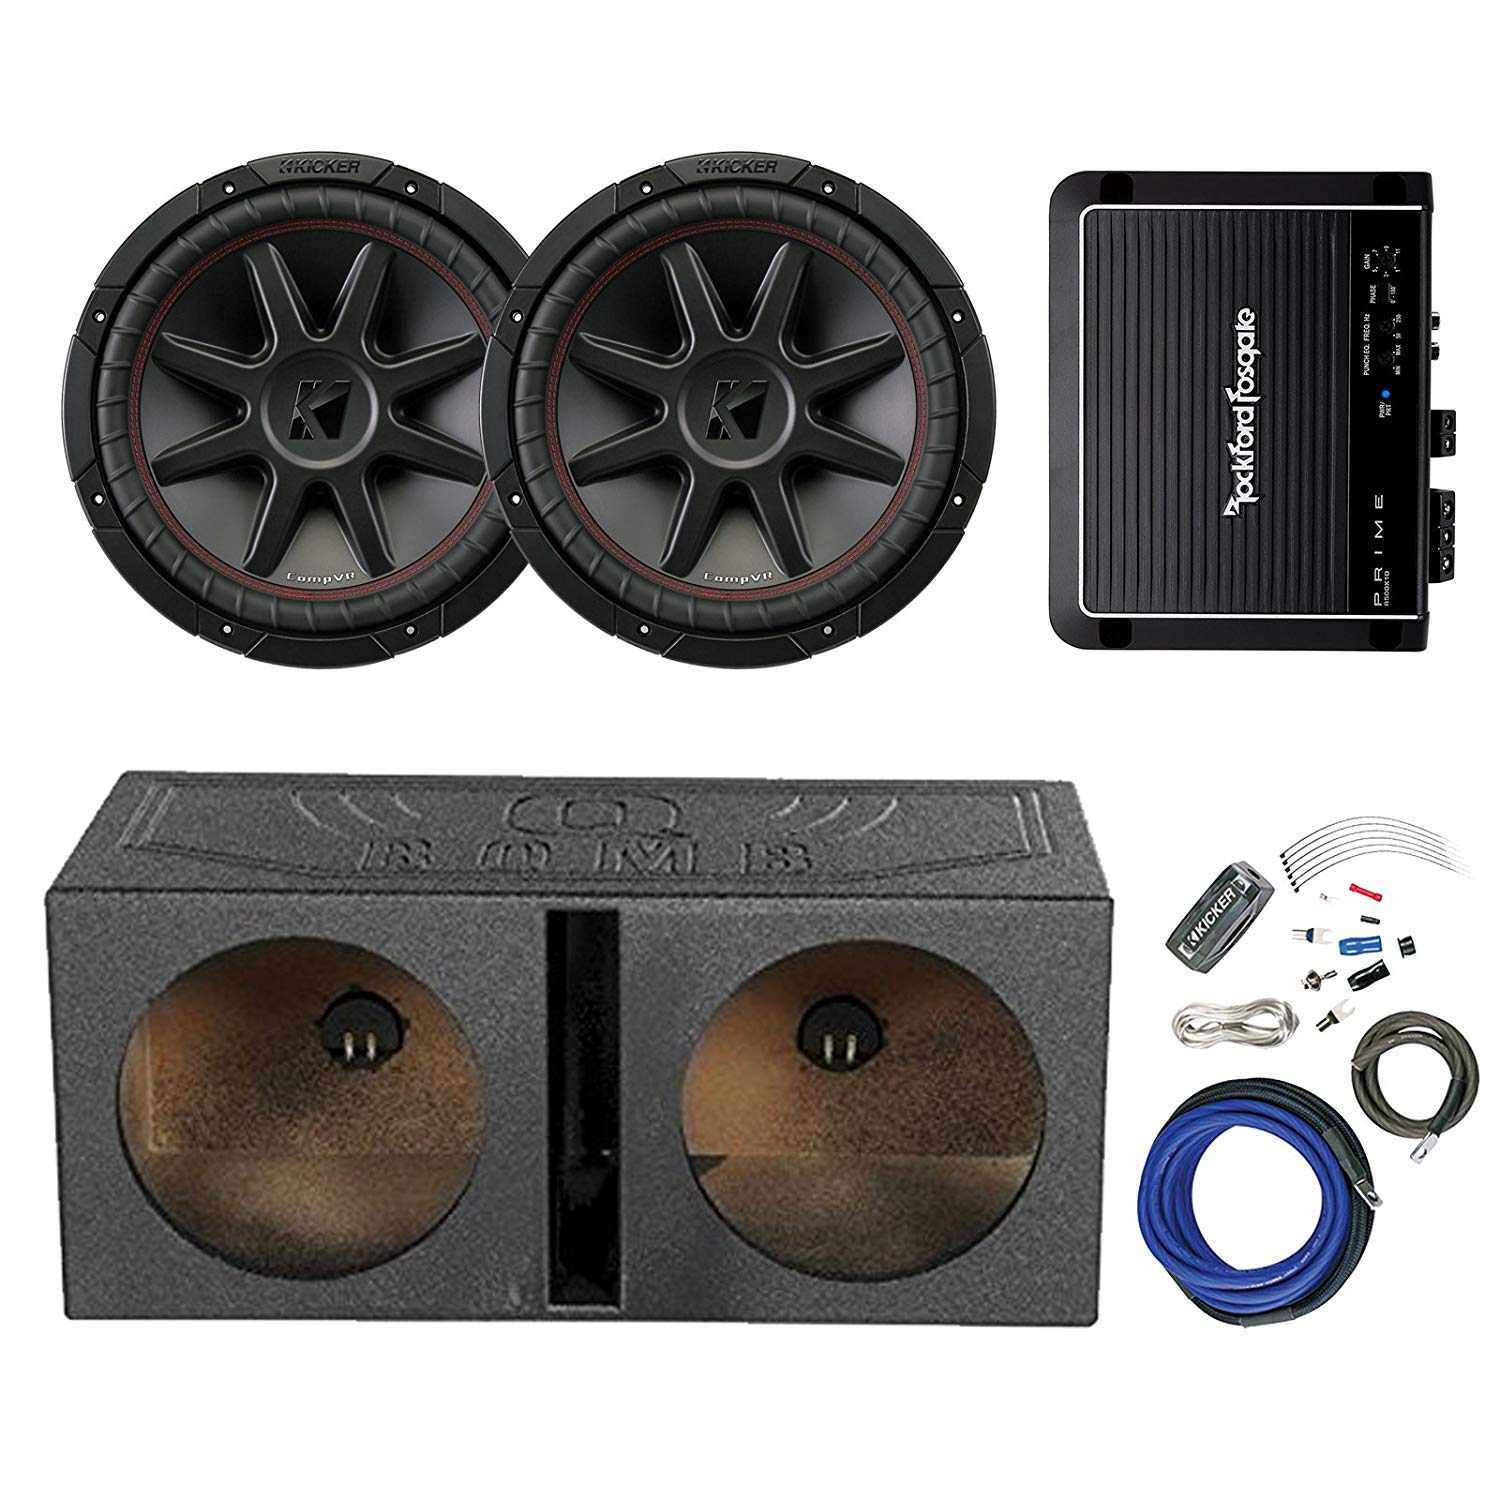 hight resolution of get quotations 2x kicker 12 800 watt 4 ohm car audio subwoofer and qpower qbomb12v 12